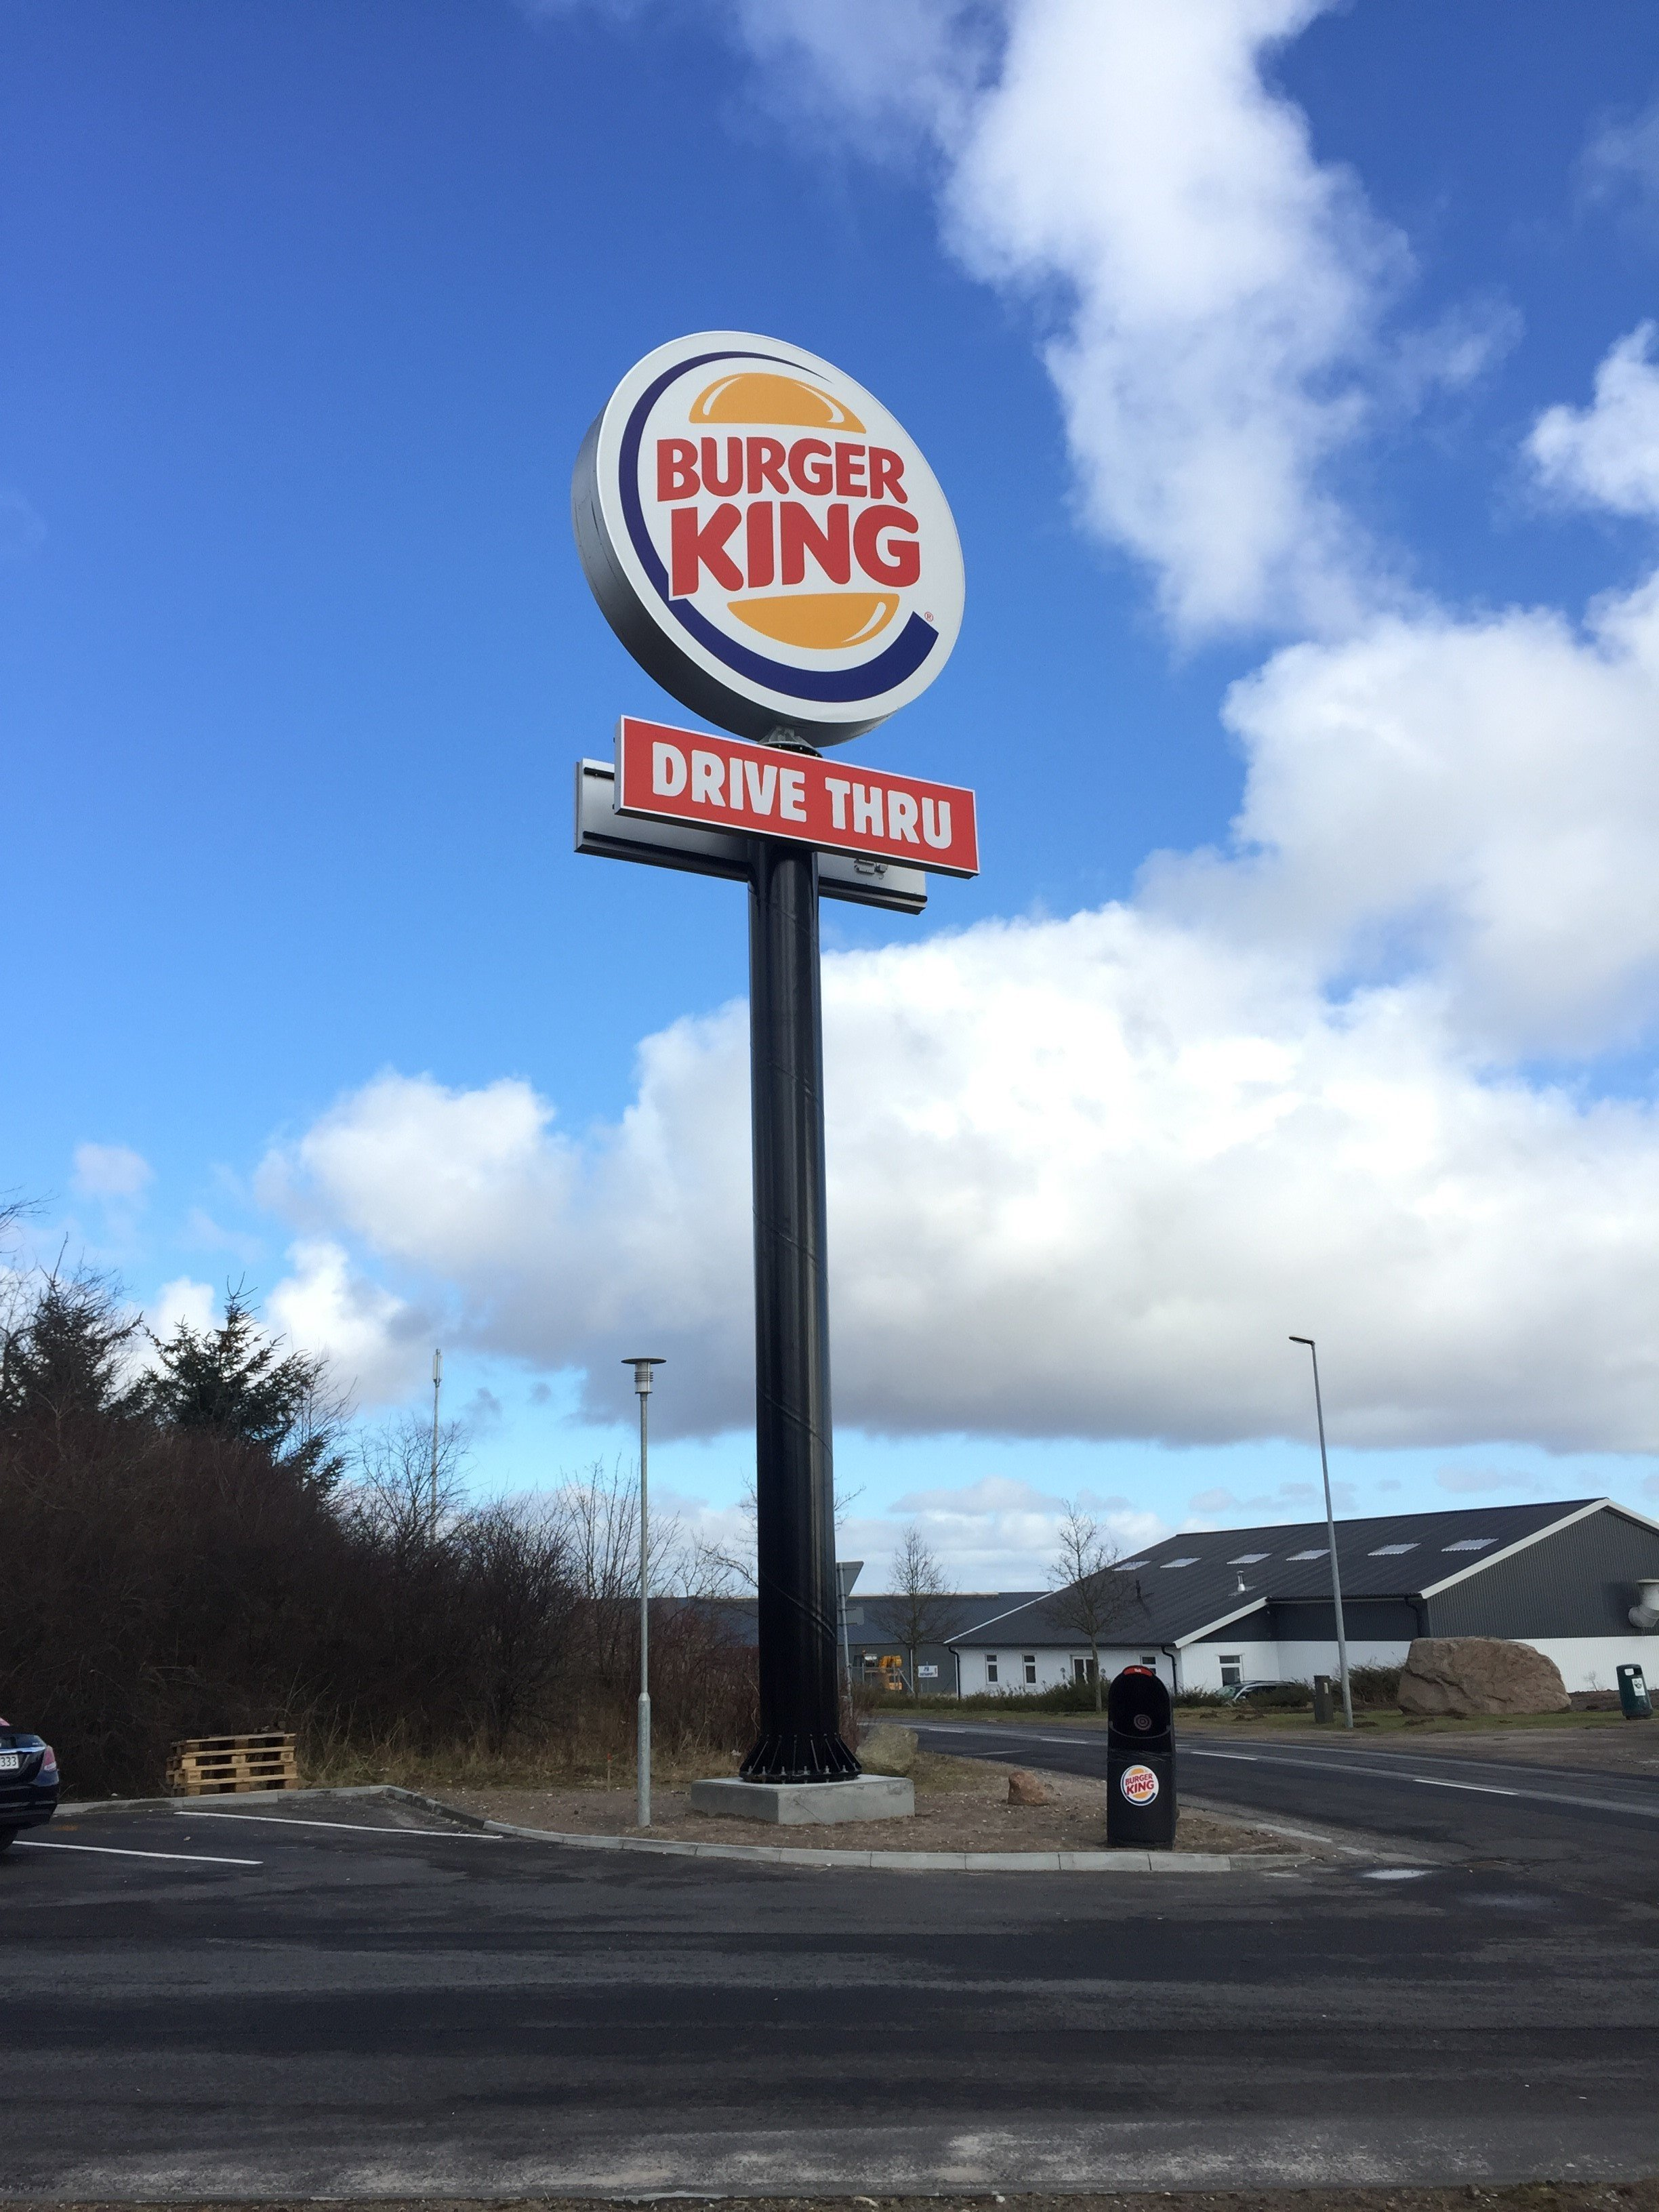 stolpskyltar Burger King